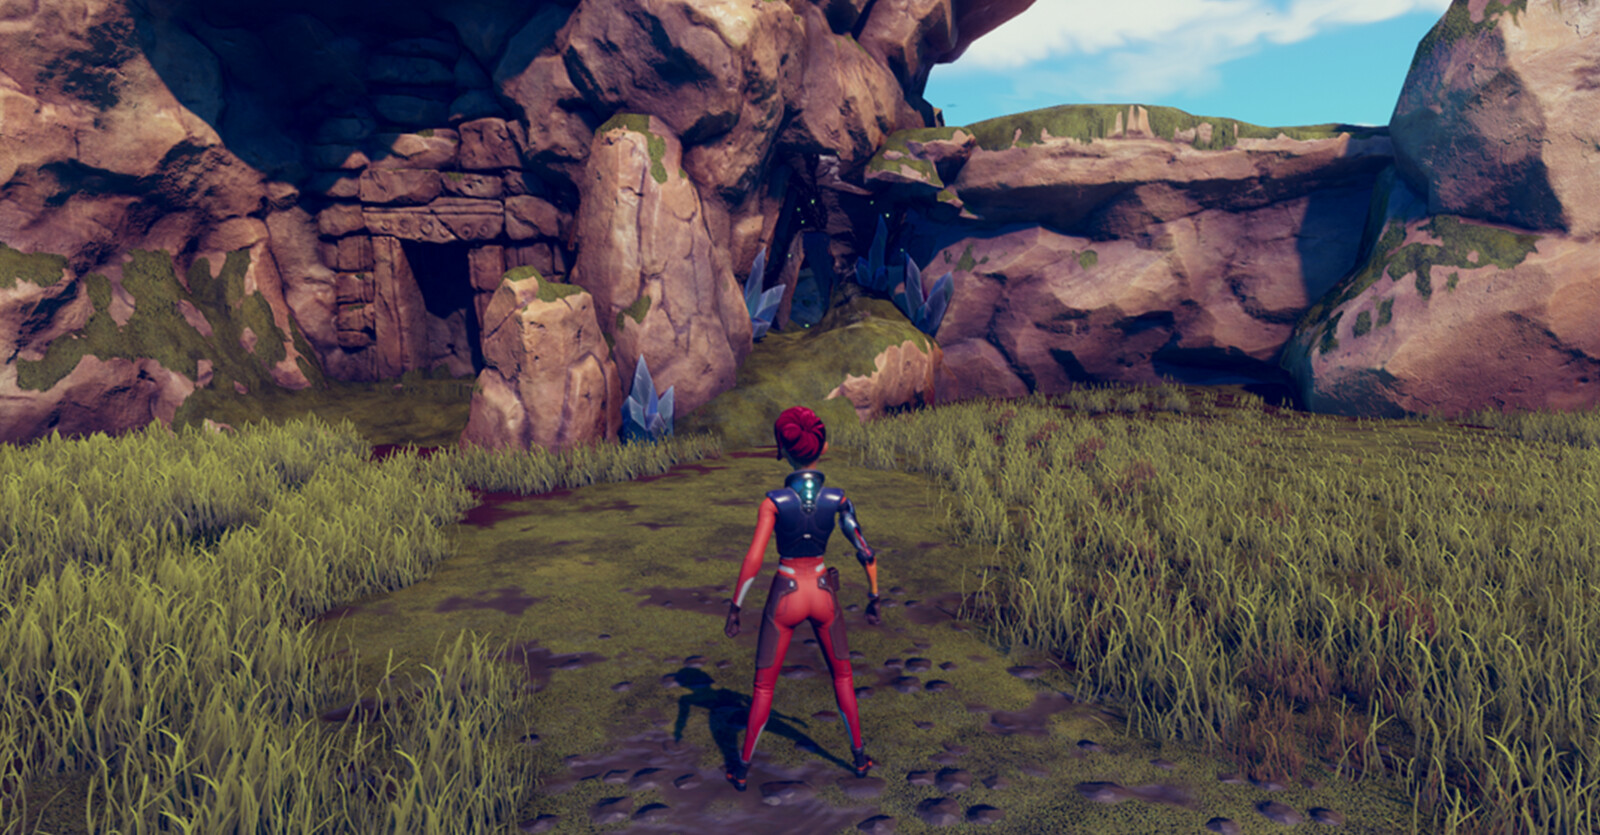 Environmental Navigation: Pathway to lead the player to the framed hidden maze entrance.